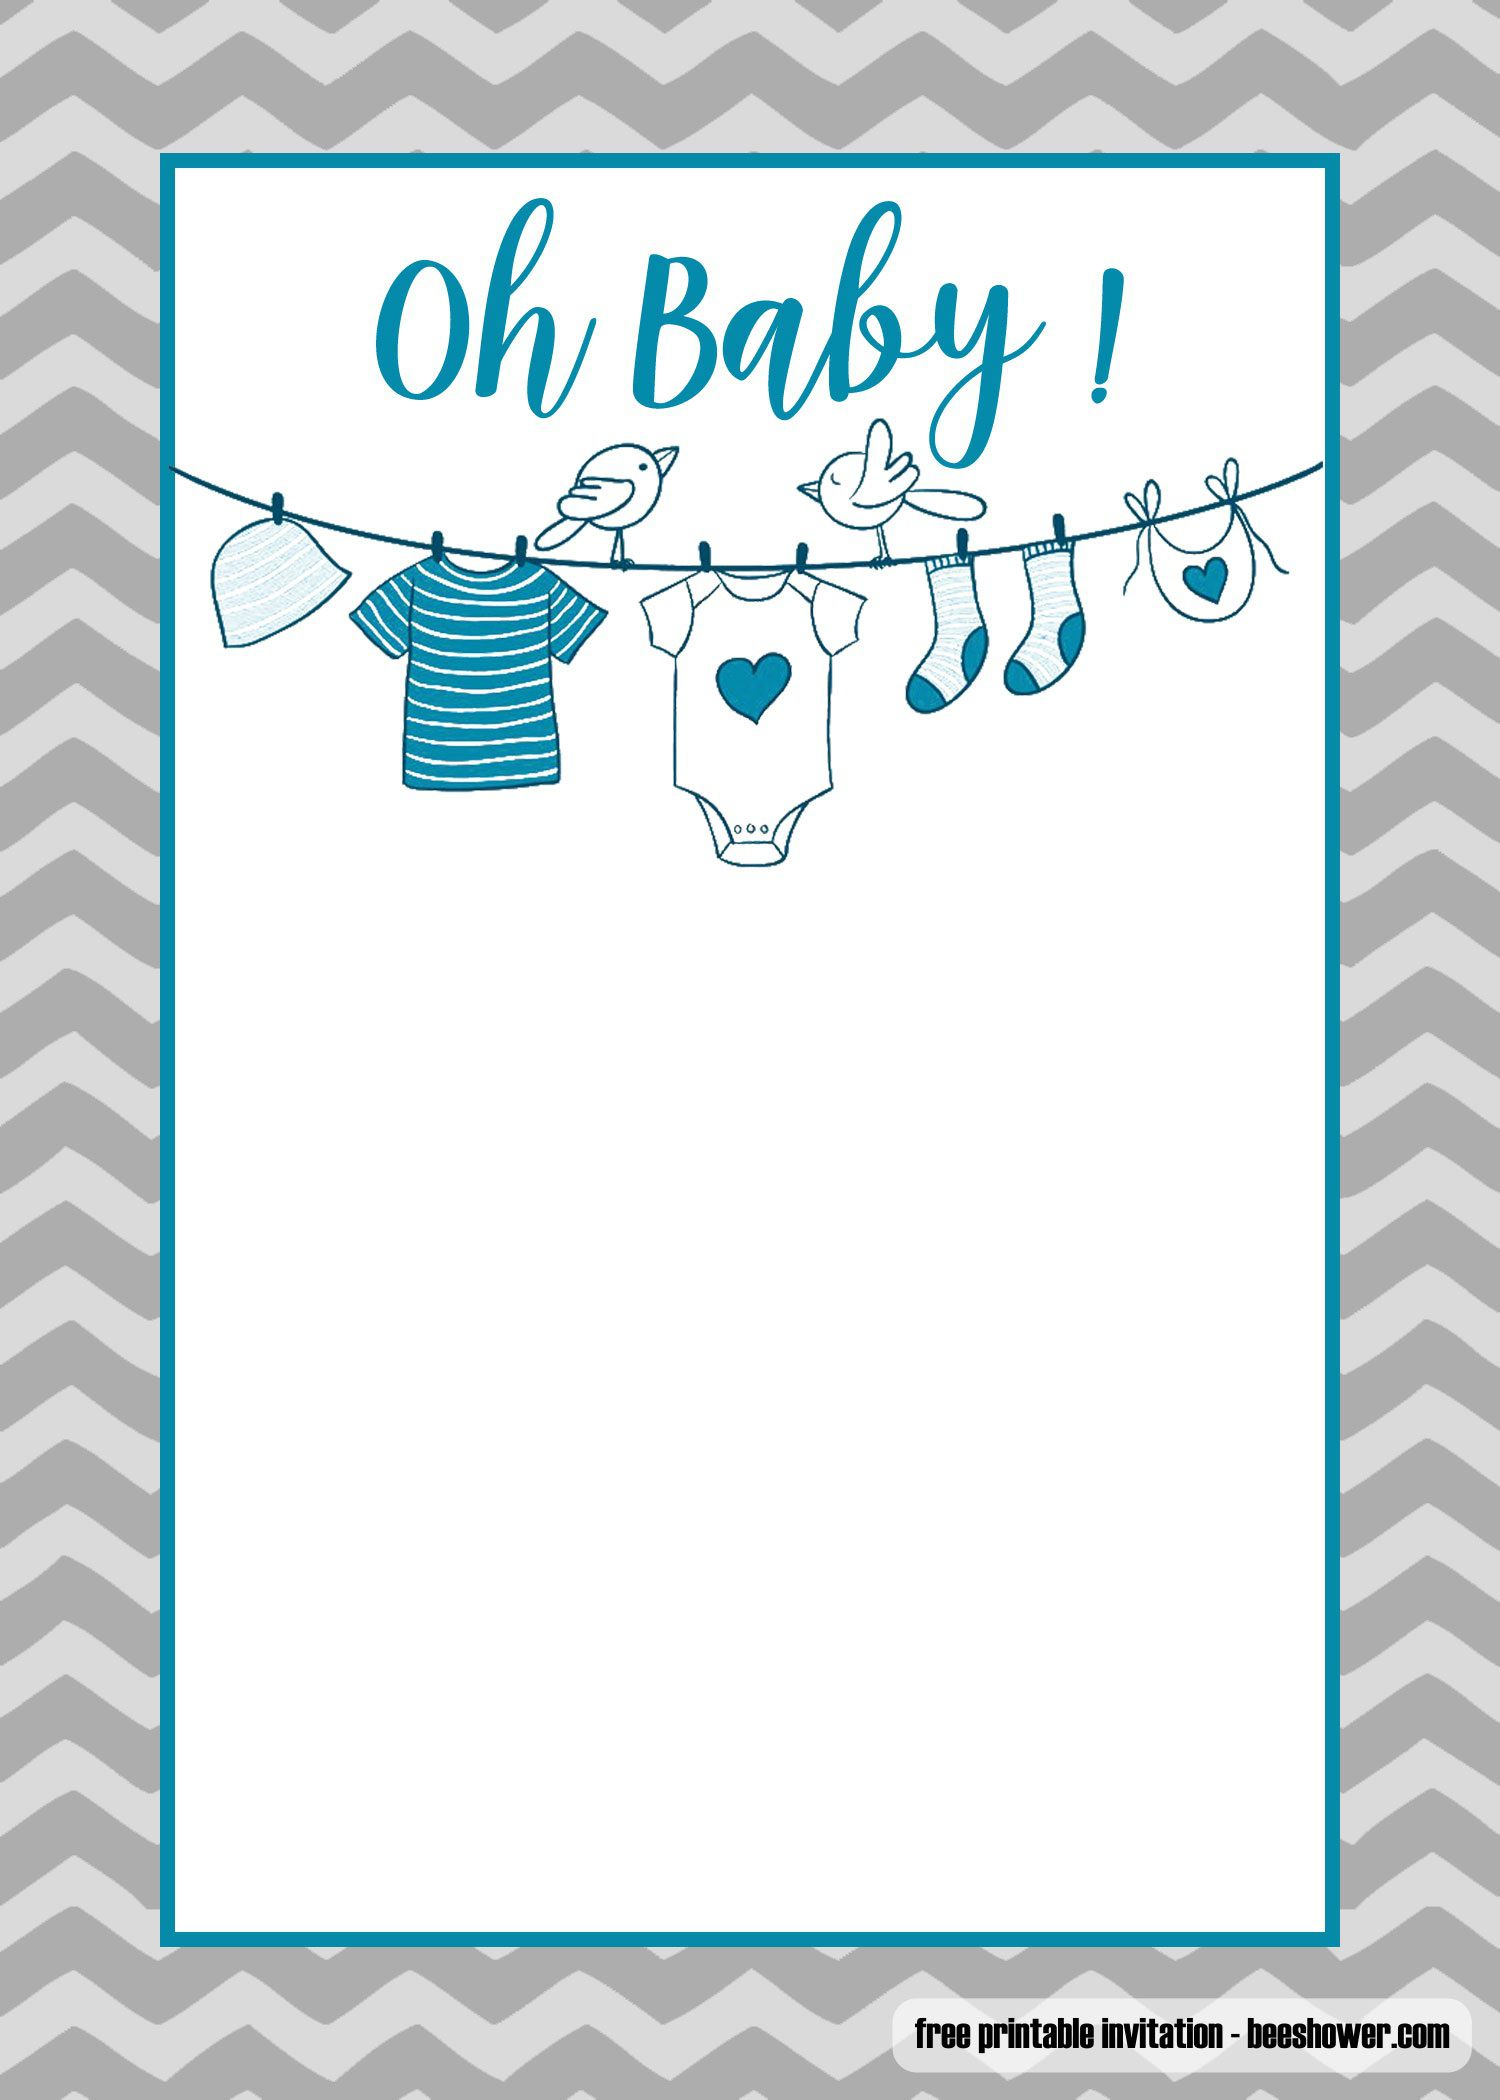 007 Sensational Baby Shower Invite Template Word Highest Clarity  Invitation Wording Sample Free ExampleFull